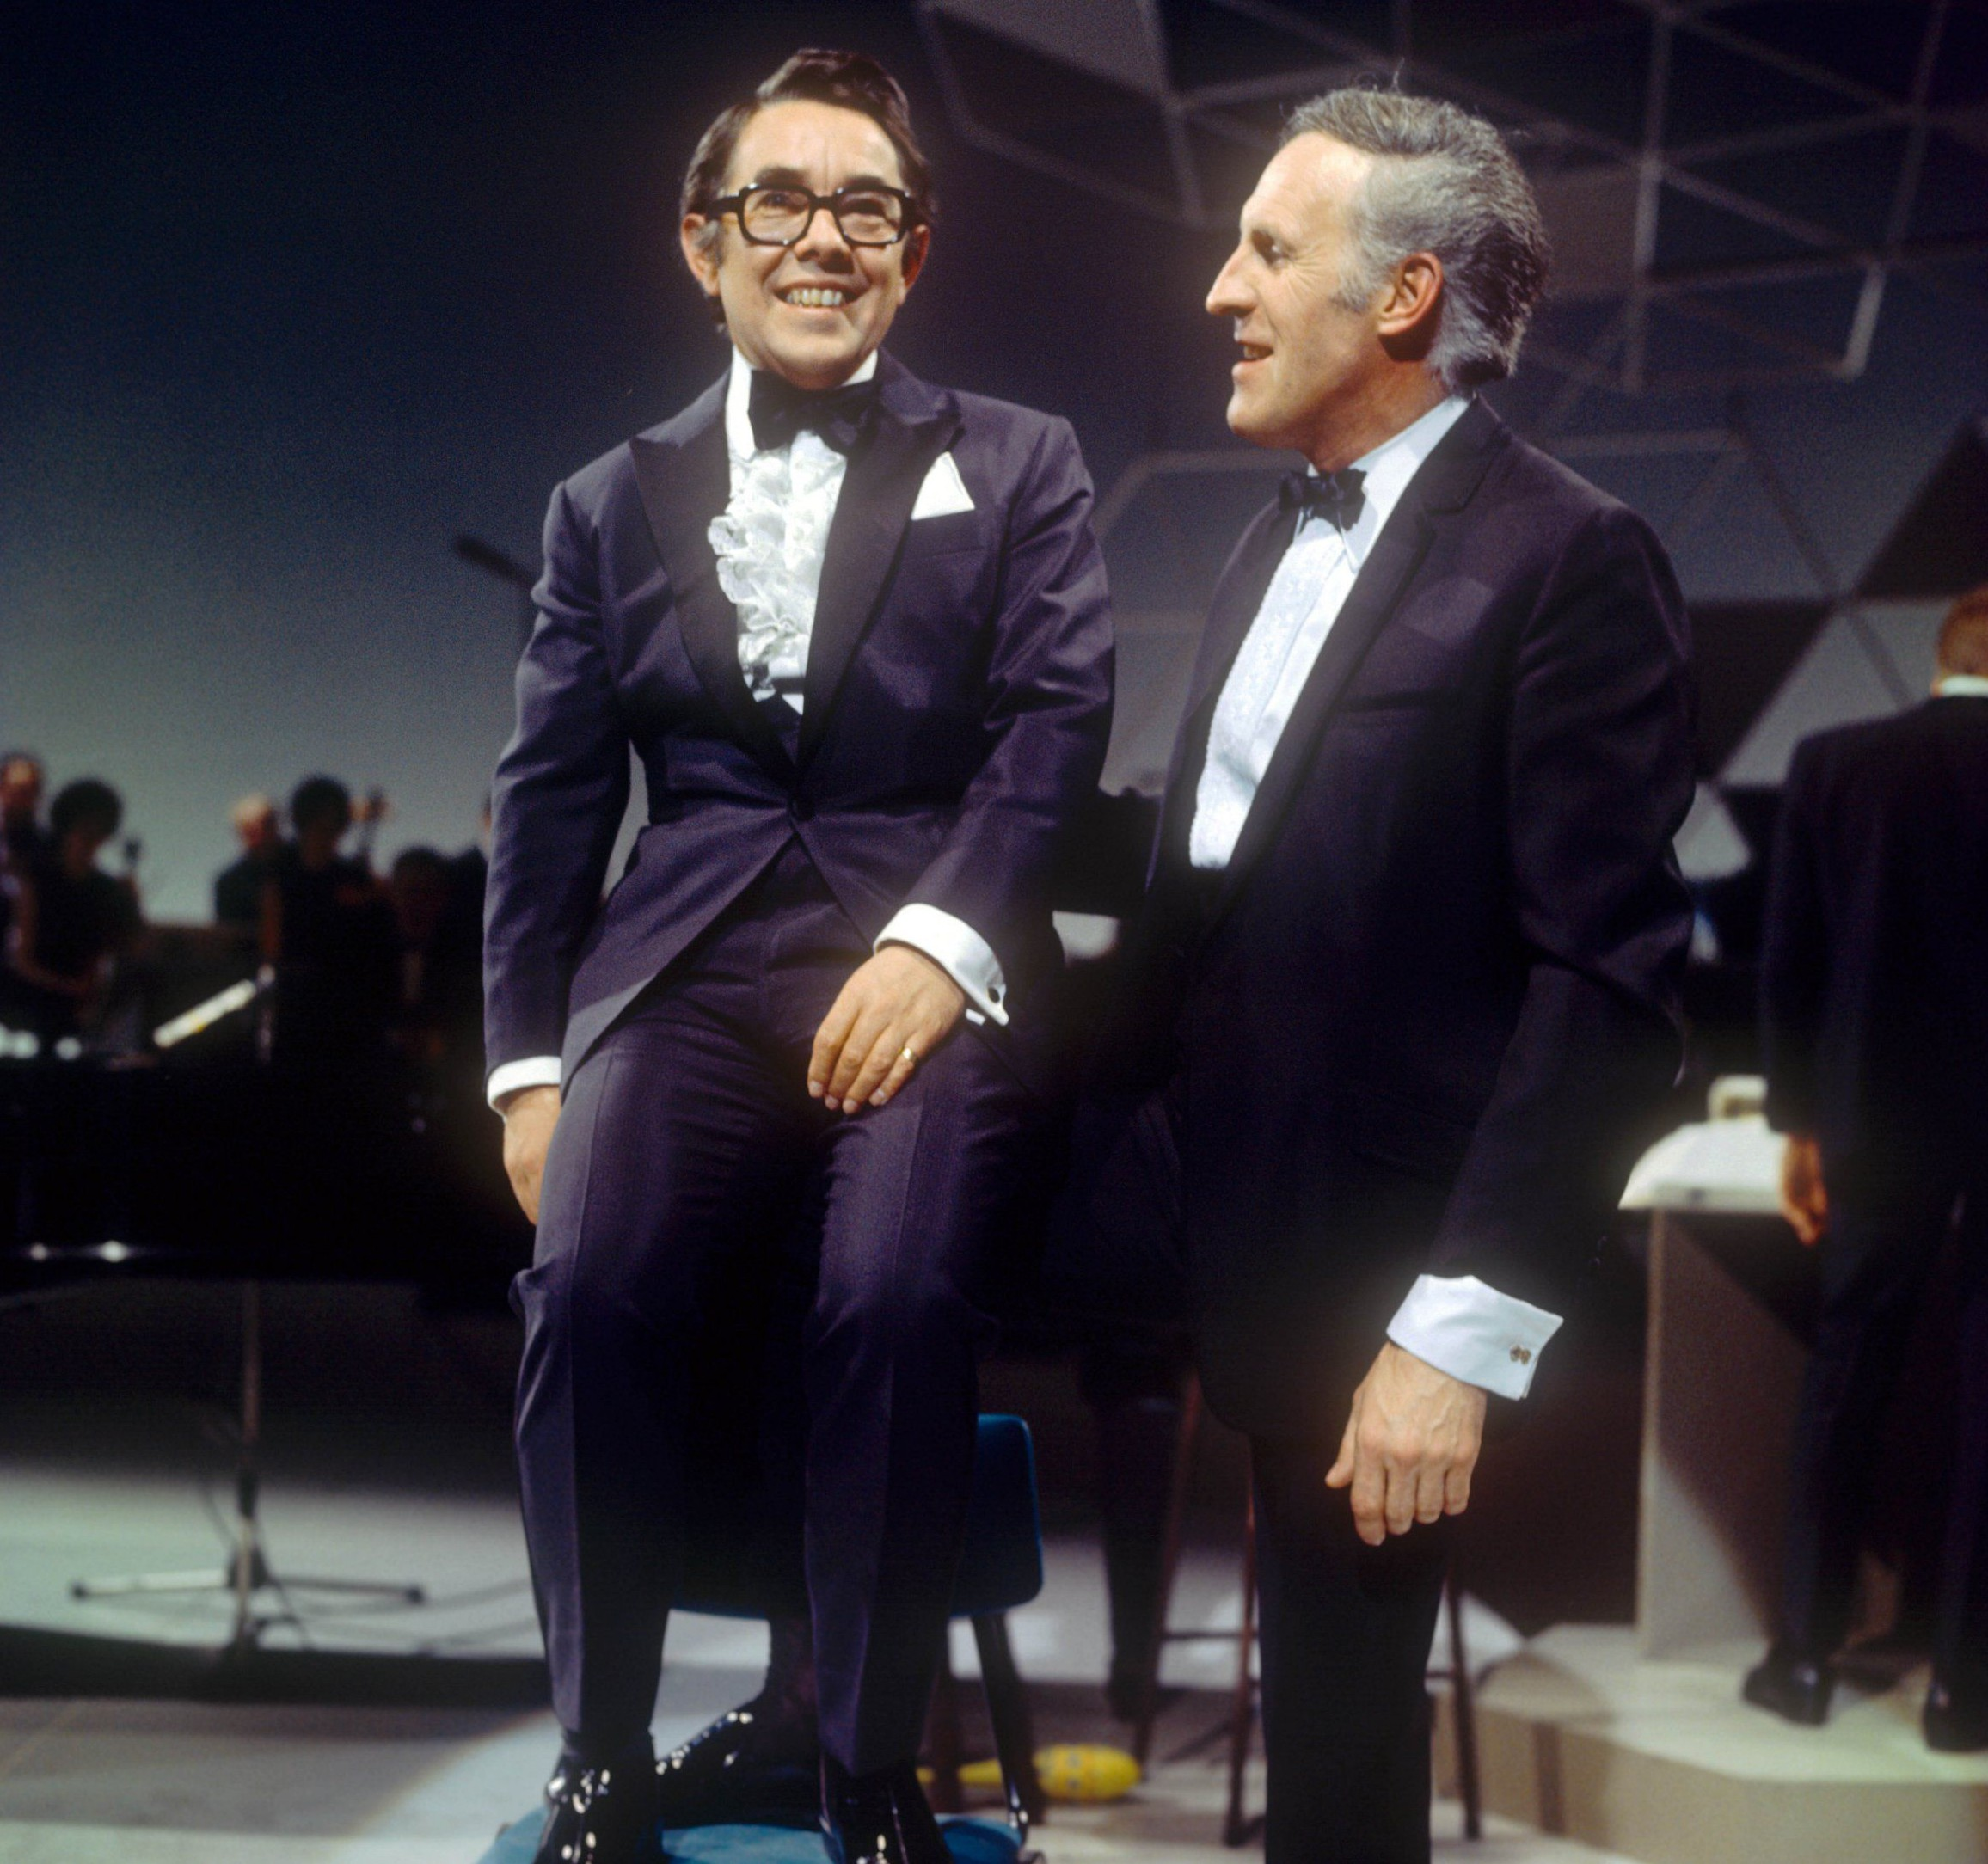 Sir Bruce Forsyth on Ronnie Corbett: It is 'one of the saddest days of my life'